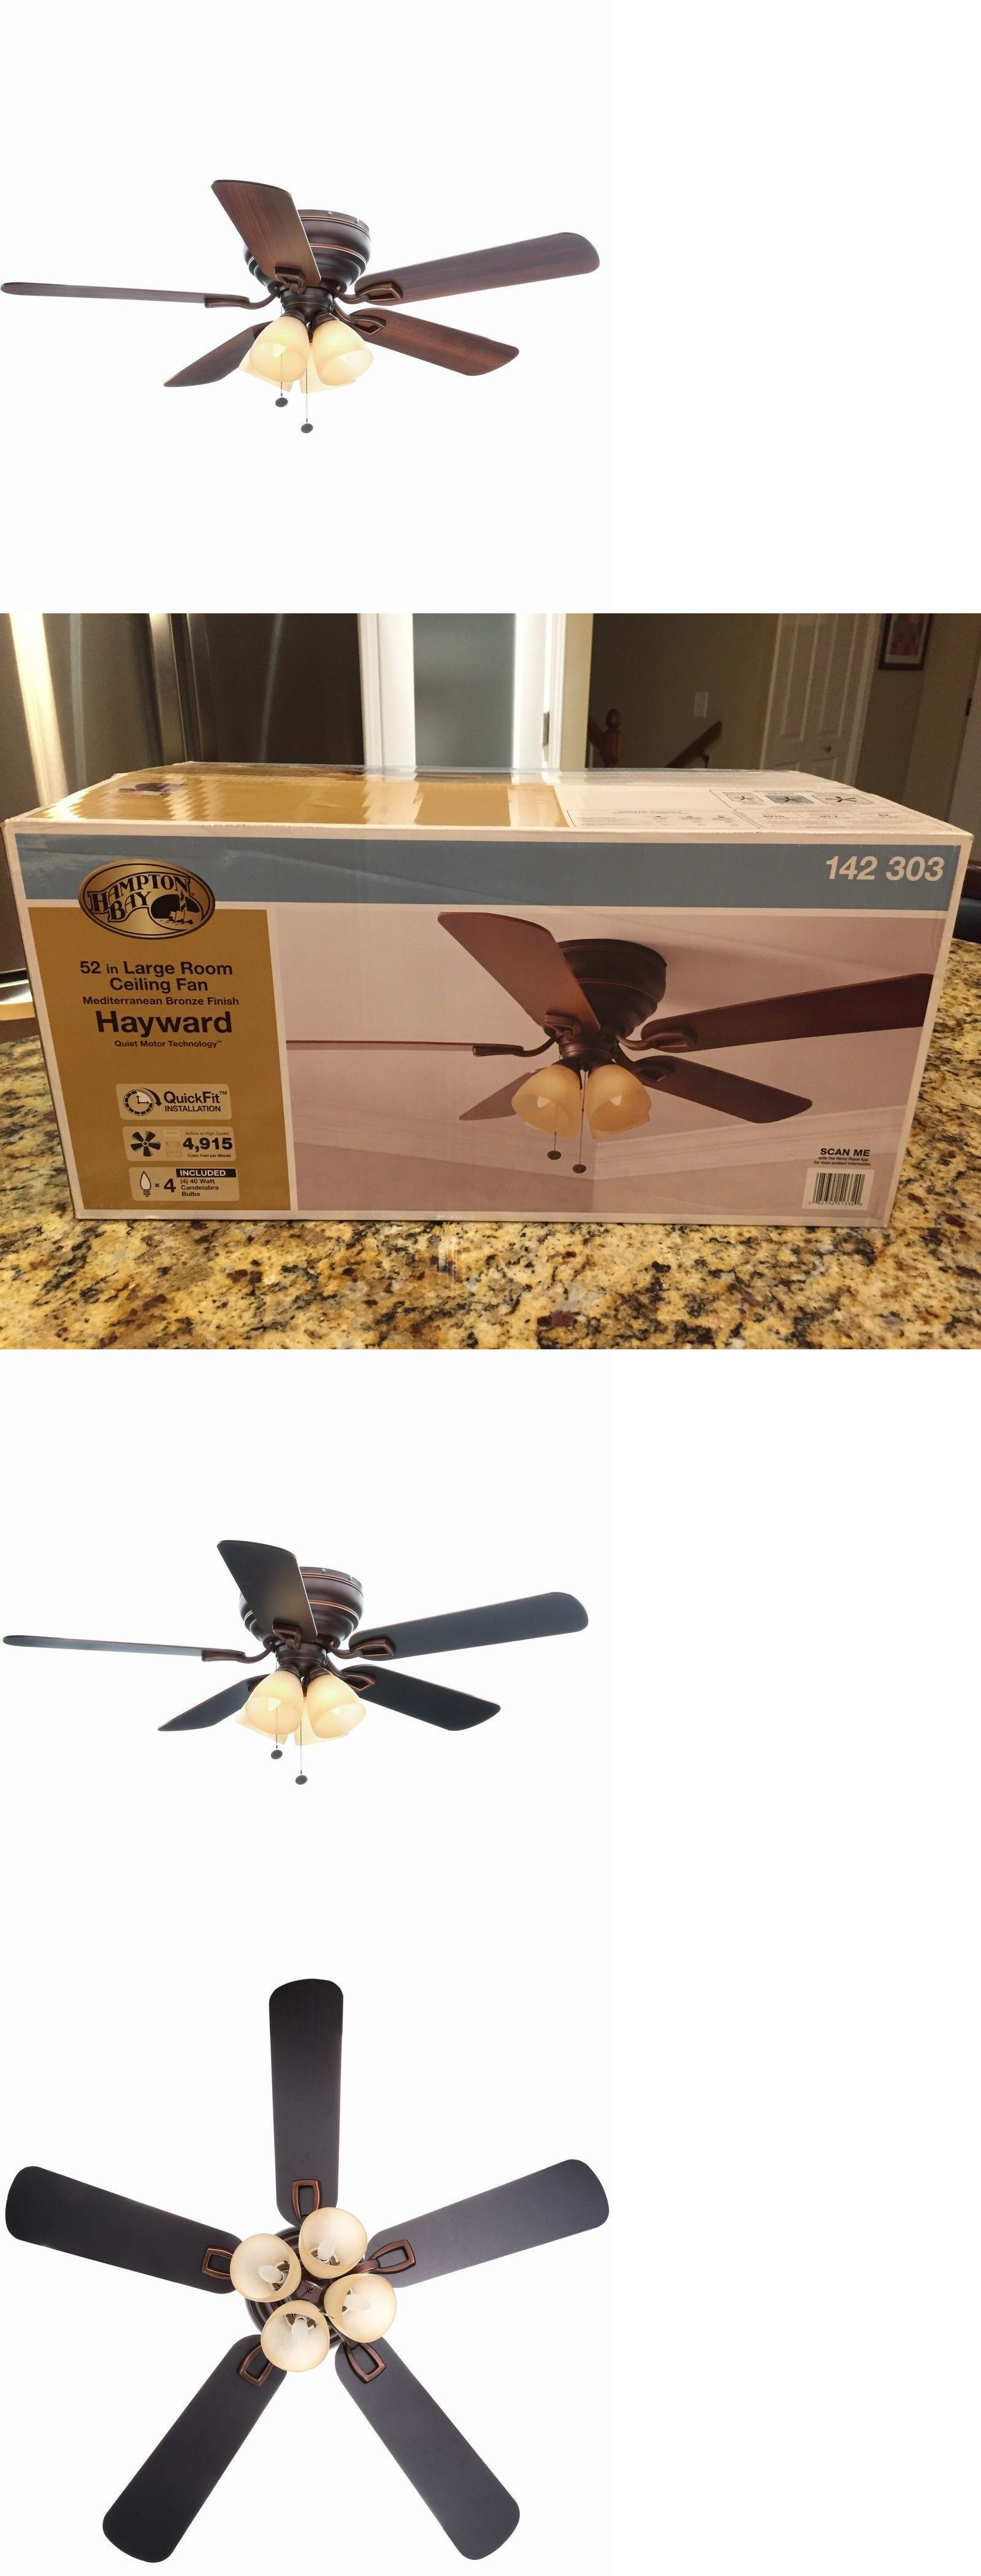 Ceiling fans 176937 new hampton bay hayward 52 mediterranean ceiling fans 176937 new hampton bay hayward 52 mediterranean bronze ceiling fan w light kit mozeypictures Choice Image